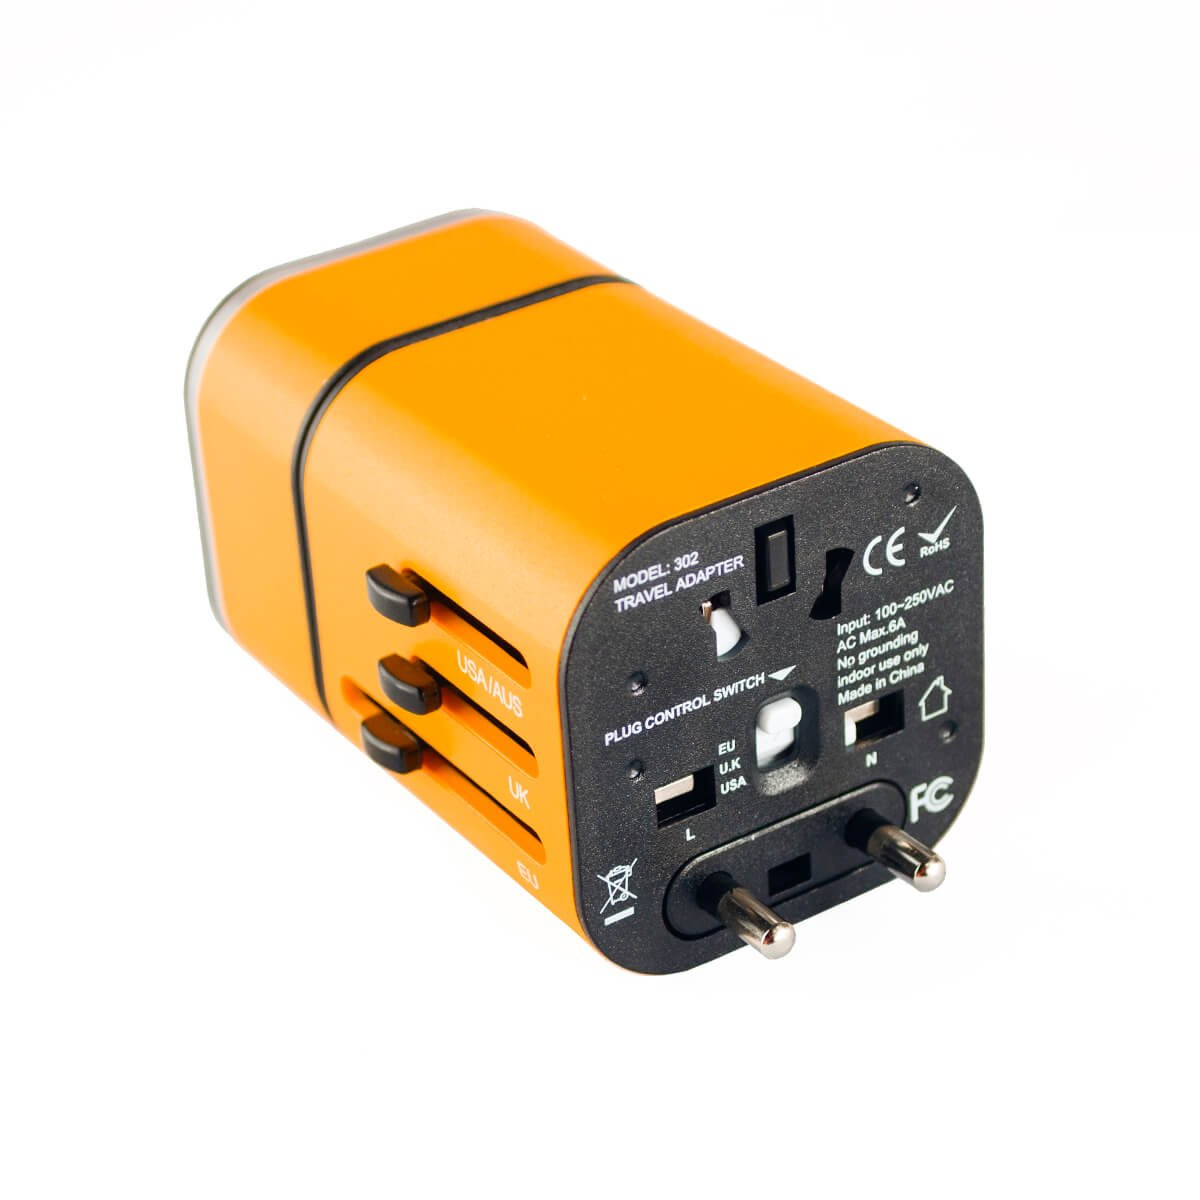 Travel Adapter Worldwide All in One Universal Travel Adaptor Wall AC Power Plug Adapter Wall Charger with Dual USB Charging Ports for USA EU UK AUS(Orange)